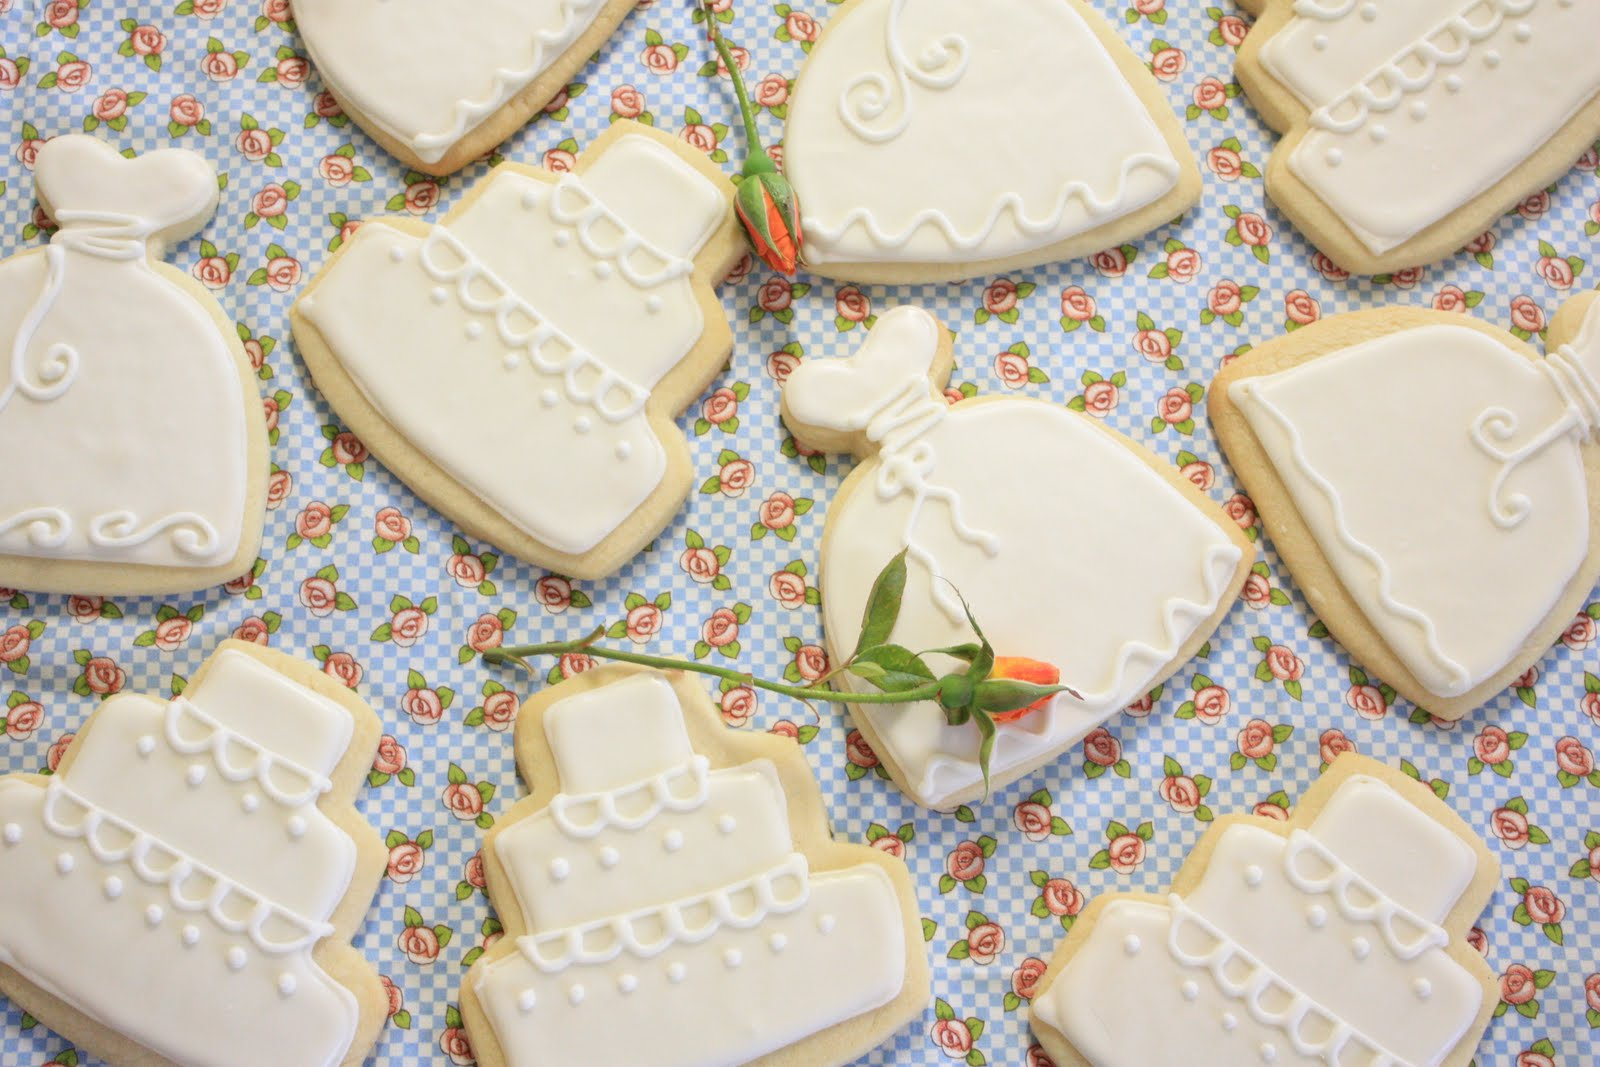 munchkin munchies wedding shower cookies With wedding shower sugar cookies